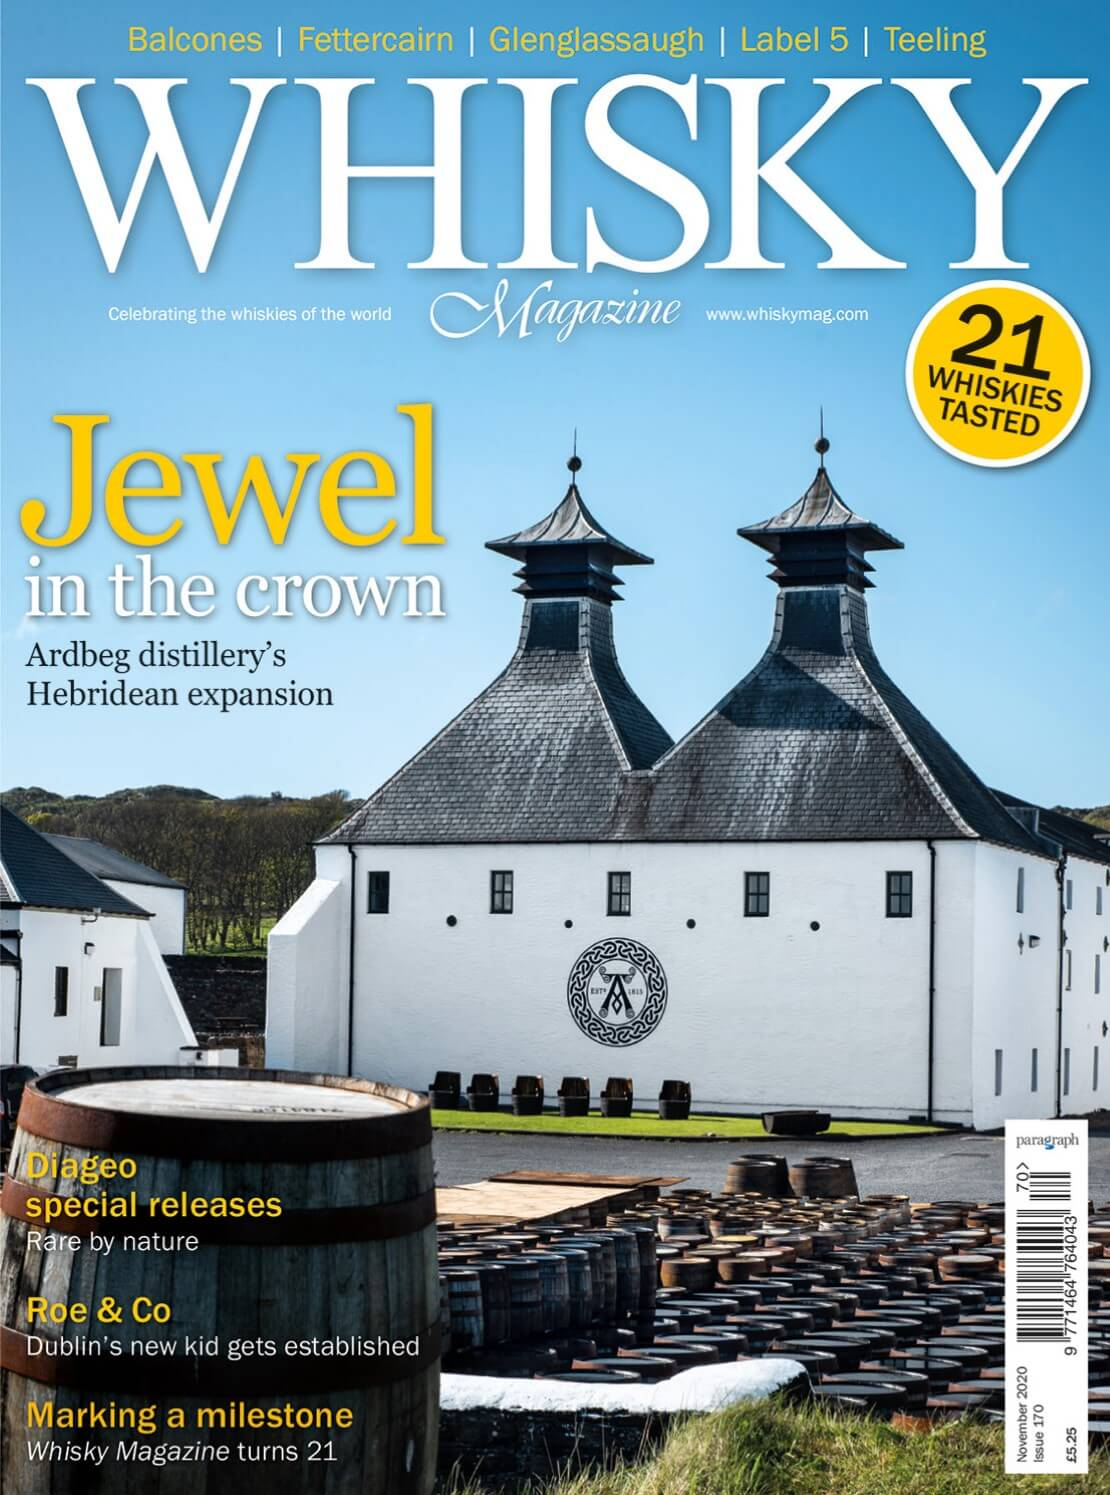 Ardbeg Distillery  Diageo's special releases  Roe & Co Whisky Magazine turns 21